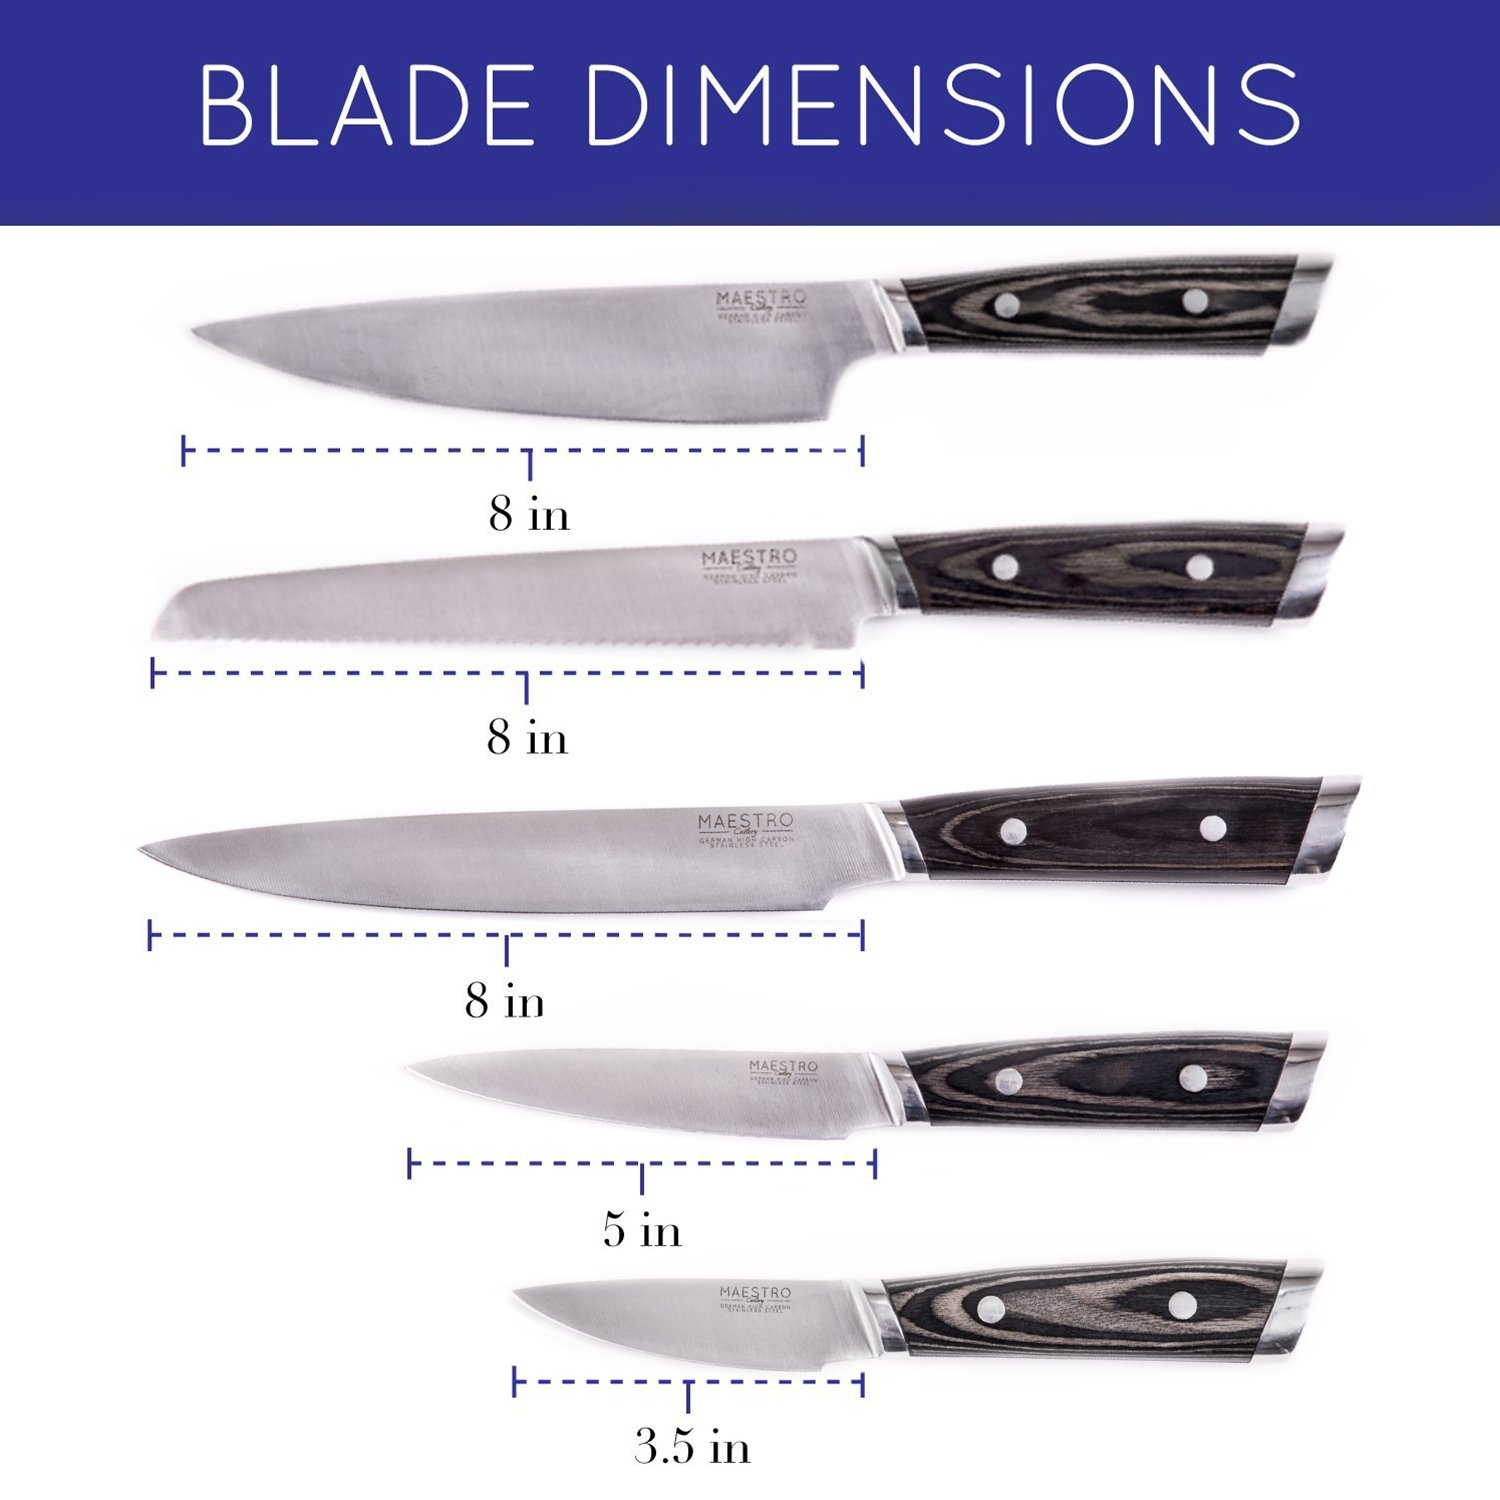 """Maestro Cutlery Volken Series German High Carbon Stainless Steel 8"""" Inch Bread Knife, 8"""" Inch Chef's Knife, 3.5"""" Inch Paring Knife, 8"""" Inch Slicing Knife, and 5"""" Inch Utility Knife with Black Wood Han by Maestro (Image #5)"""